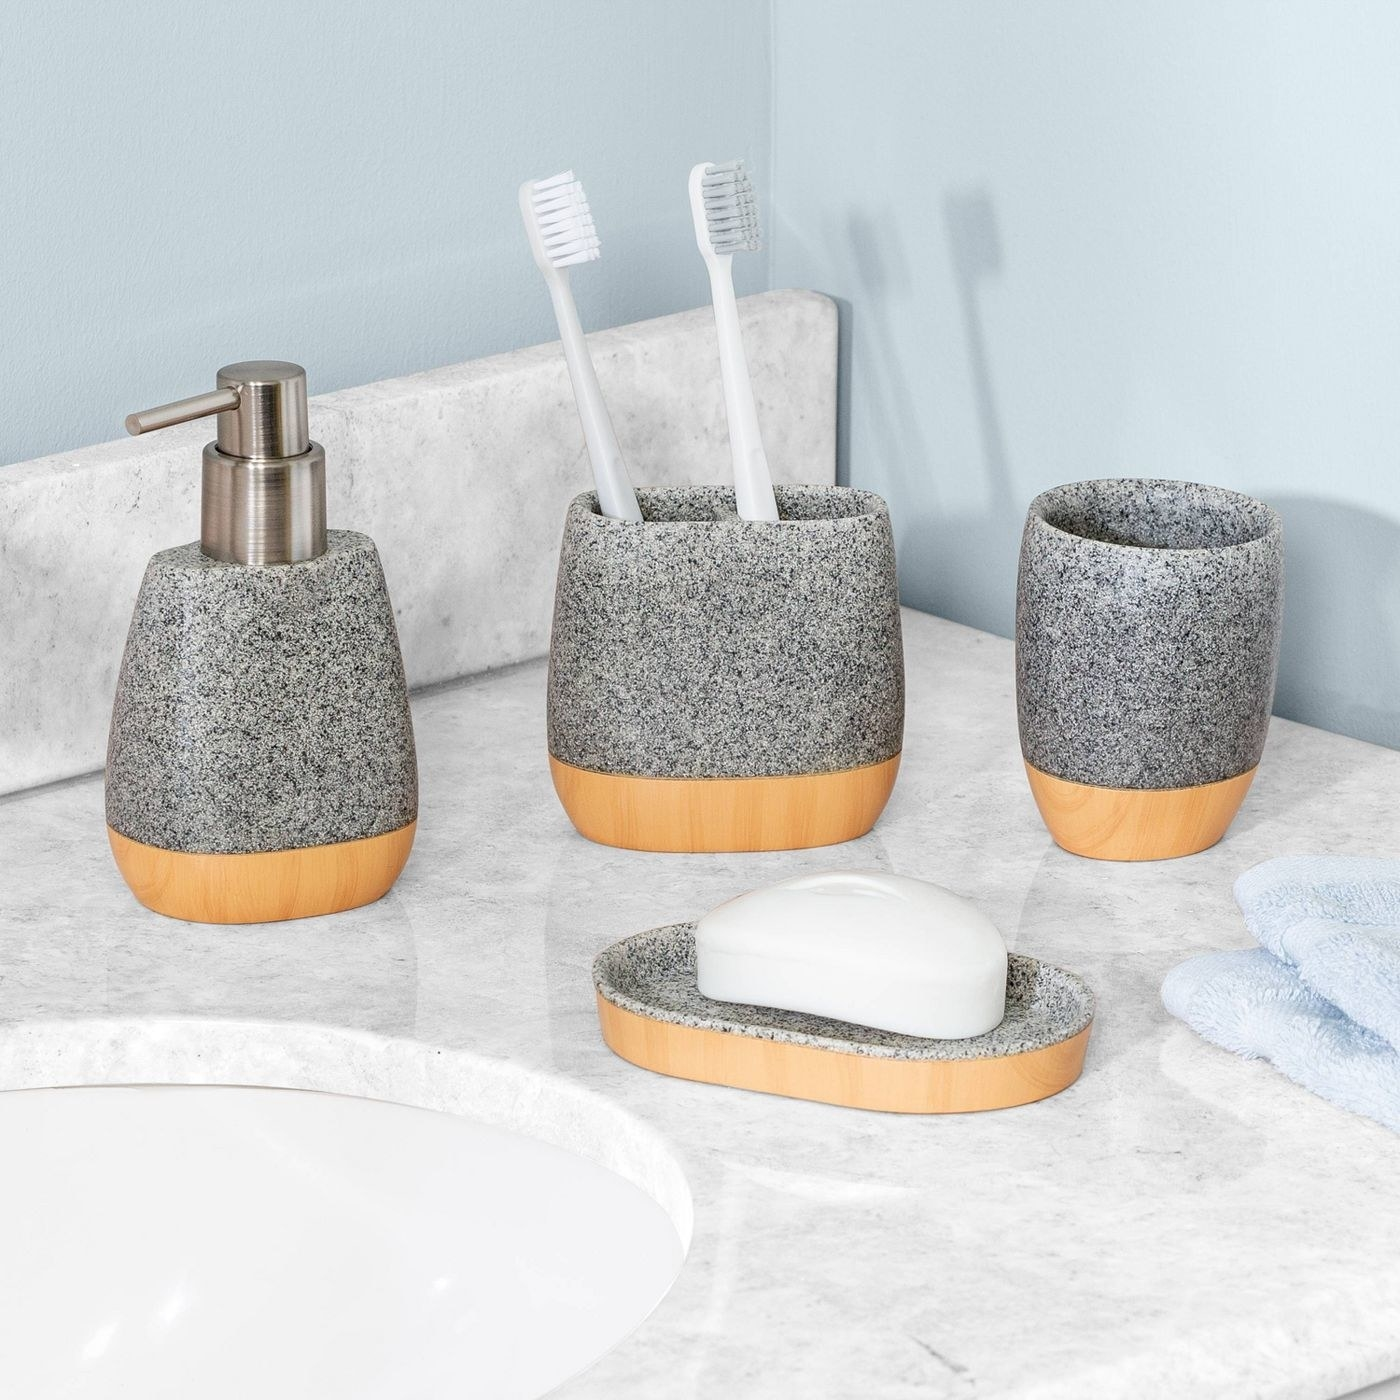 Gray speckled bathroom set with tan wooden bottoms displaying white toothbrushes and white soap